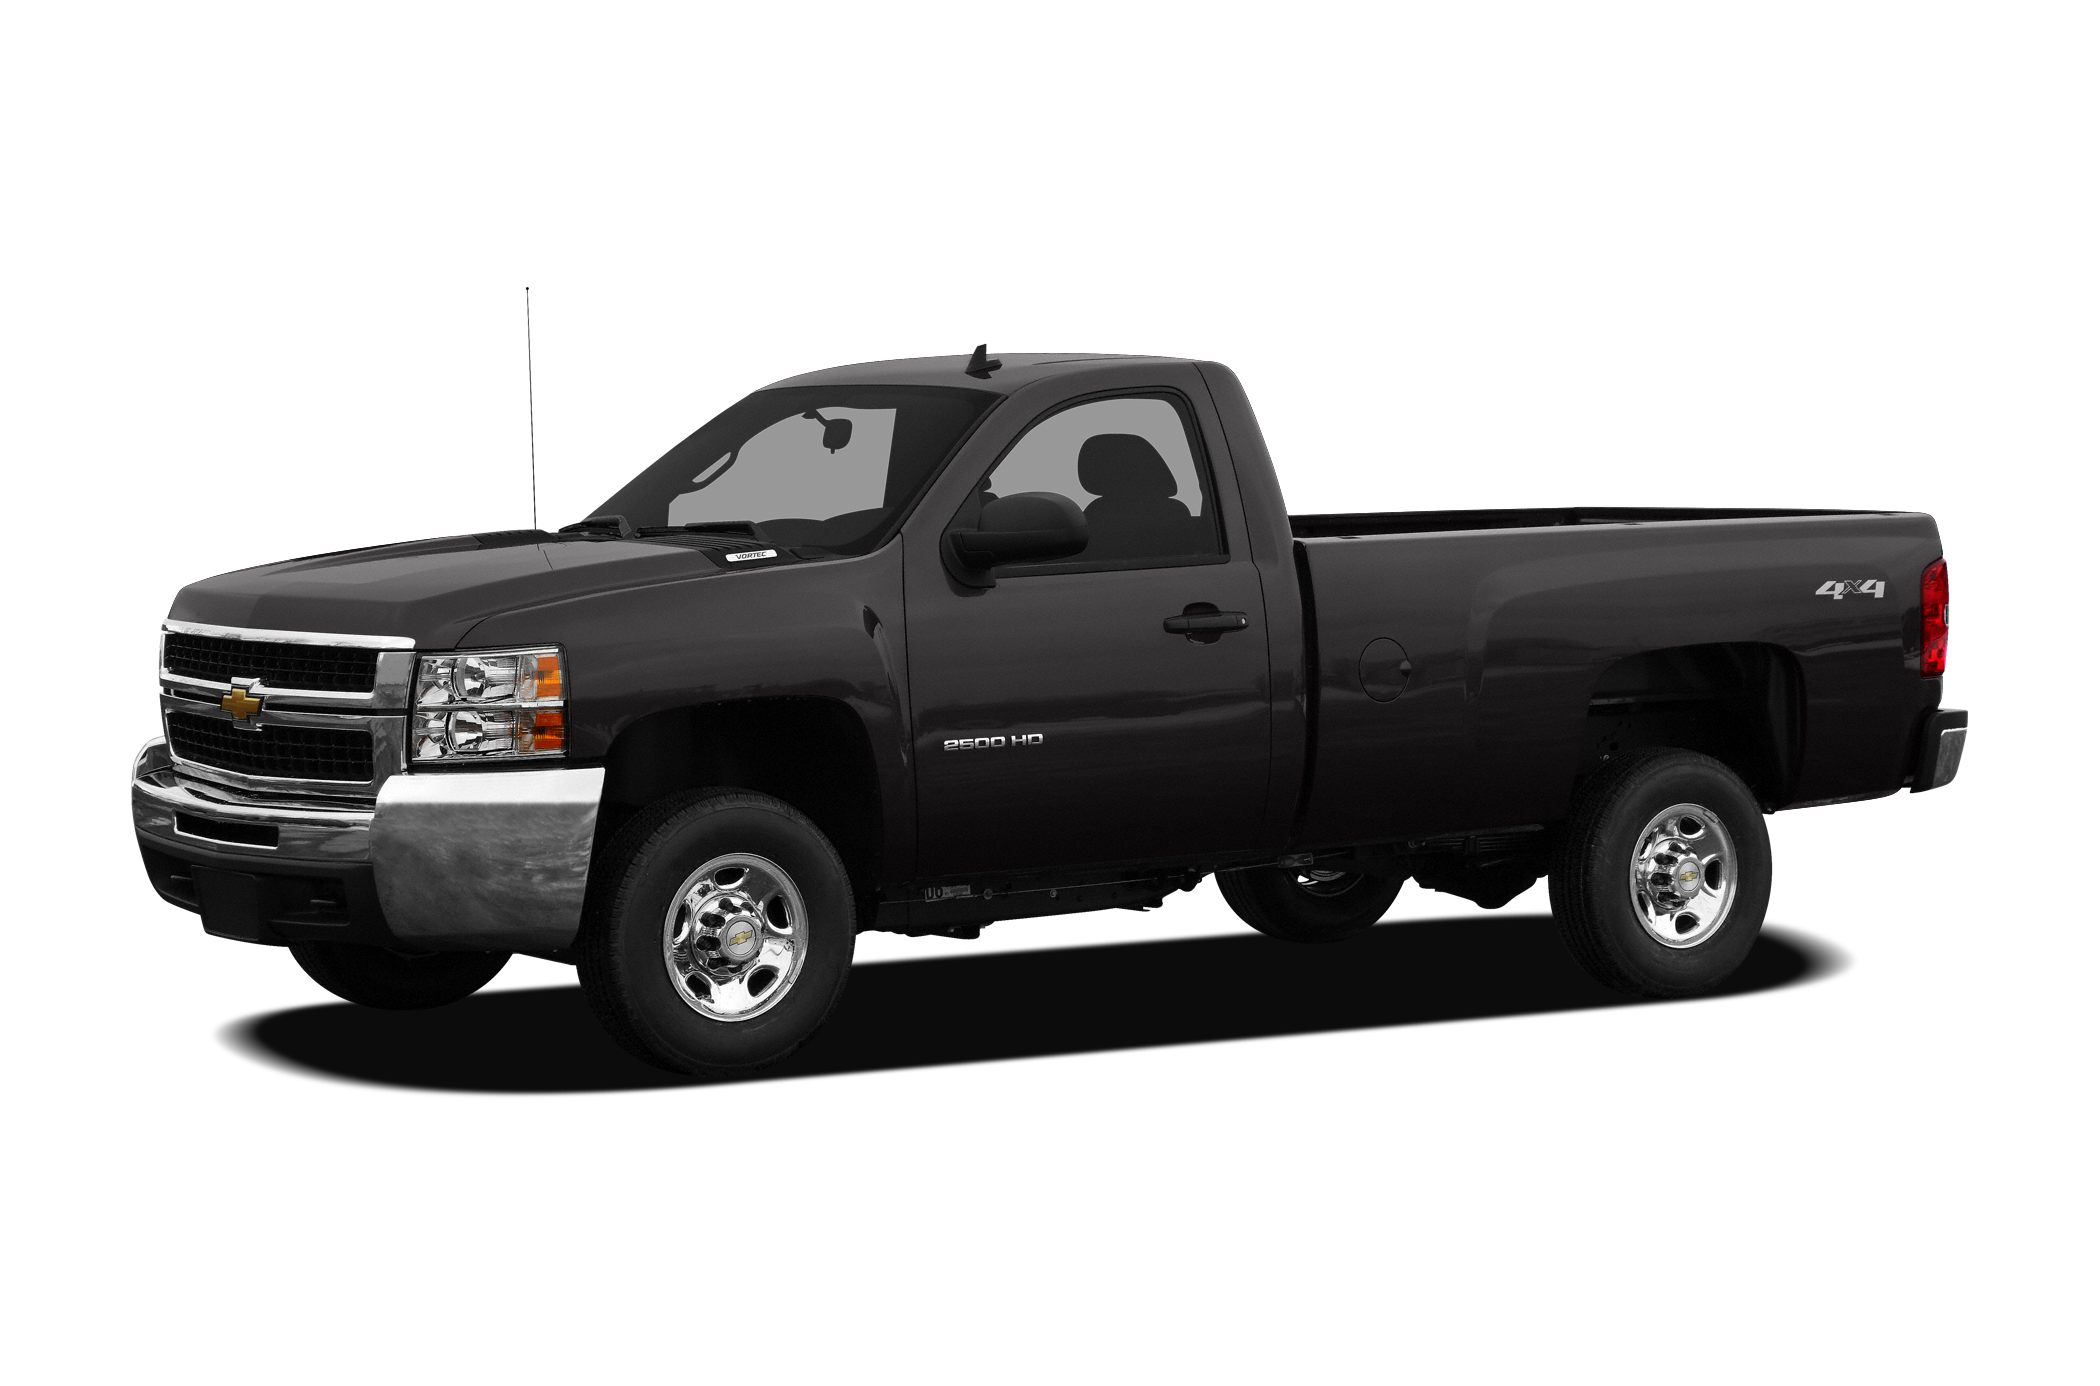 2009 Chevrolet Silverado 2500 Work Truck Extended Cab Pickup for sale in Butler for $32,995 with 72,589 miles